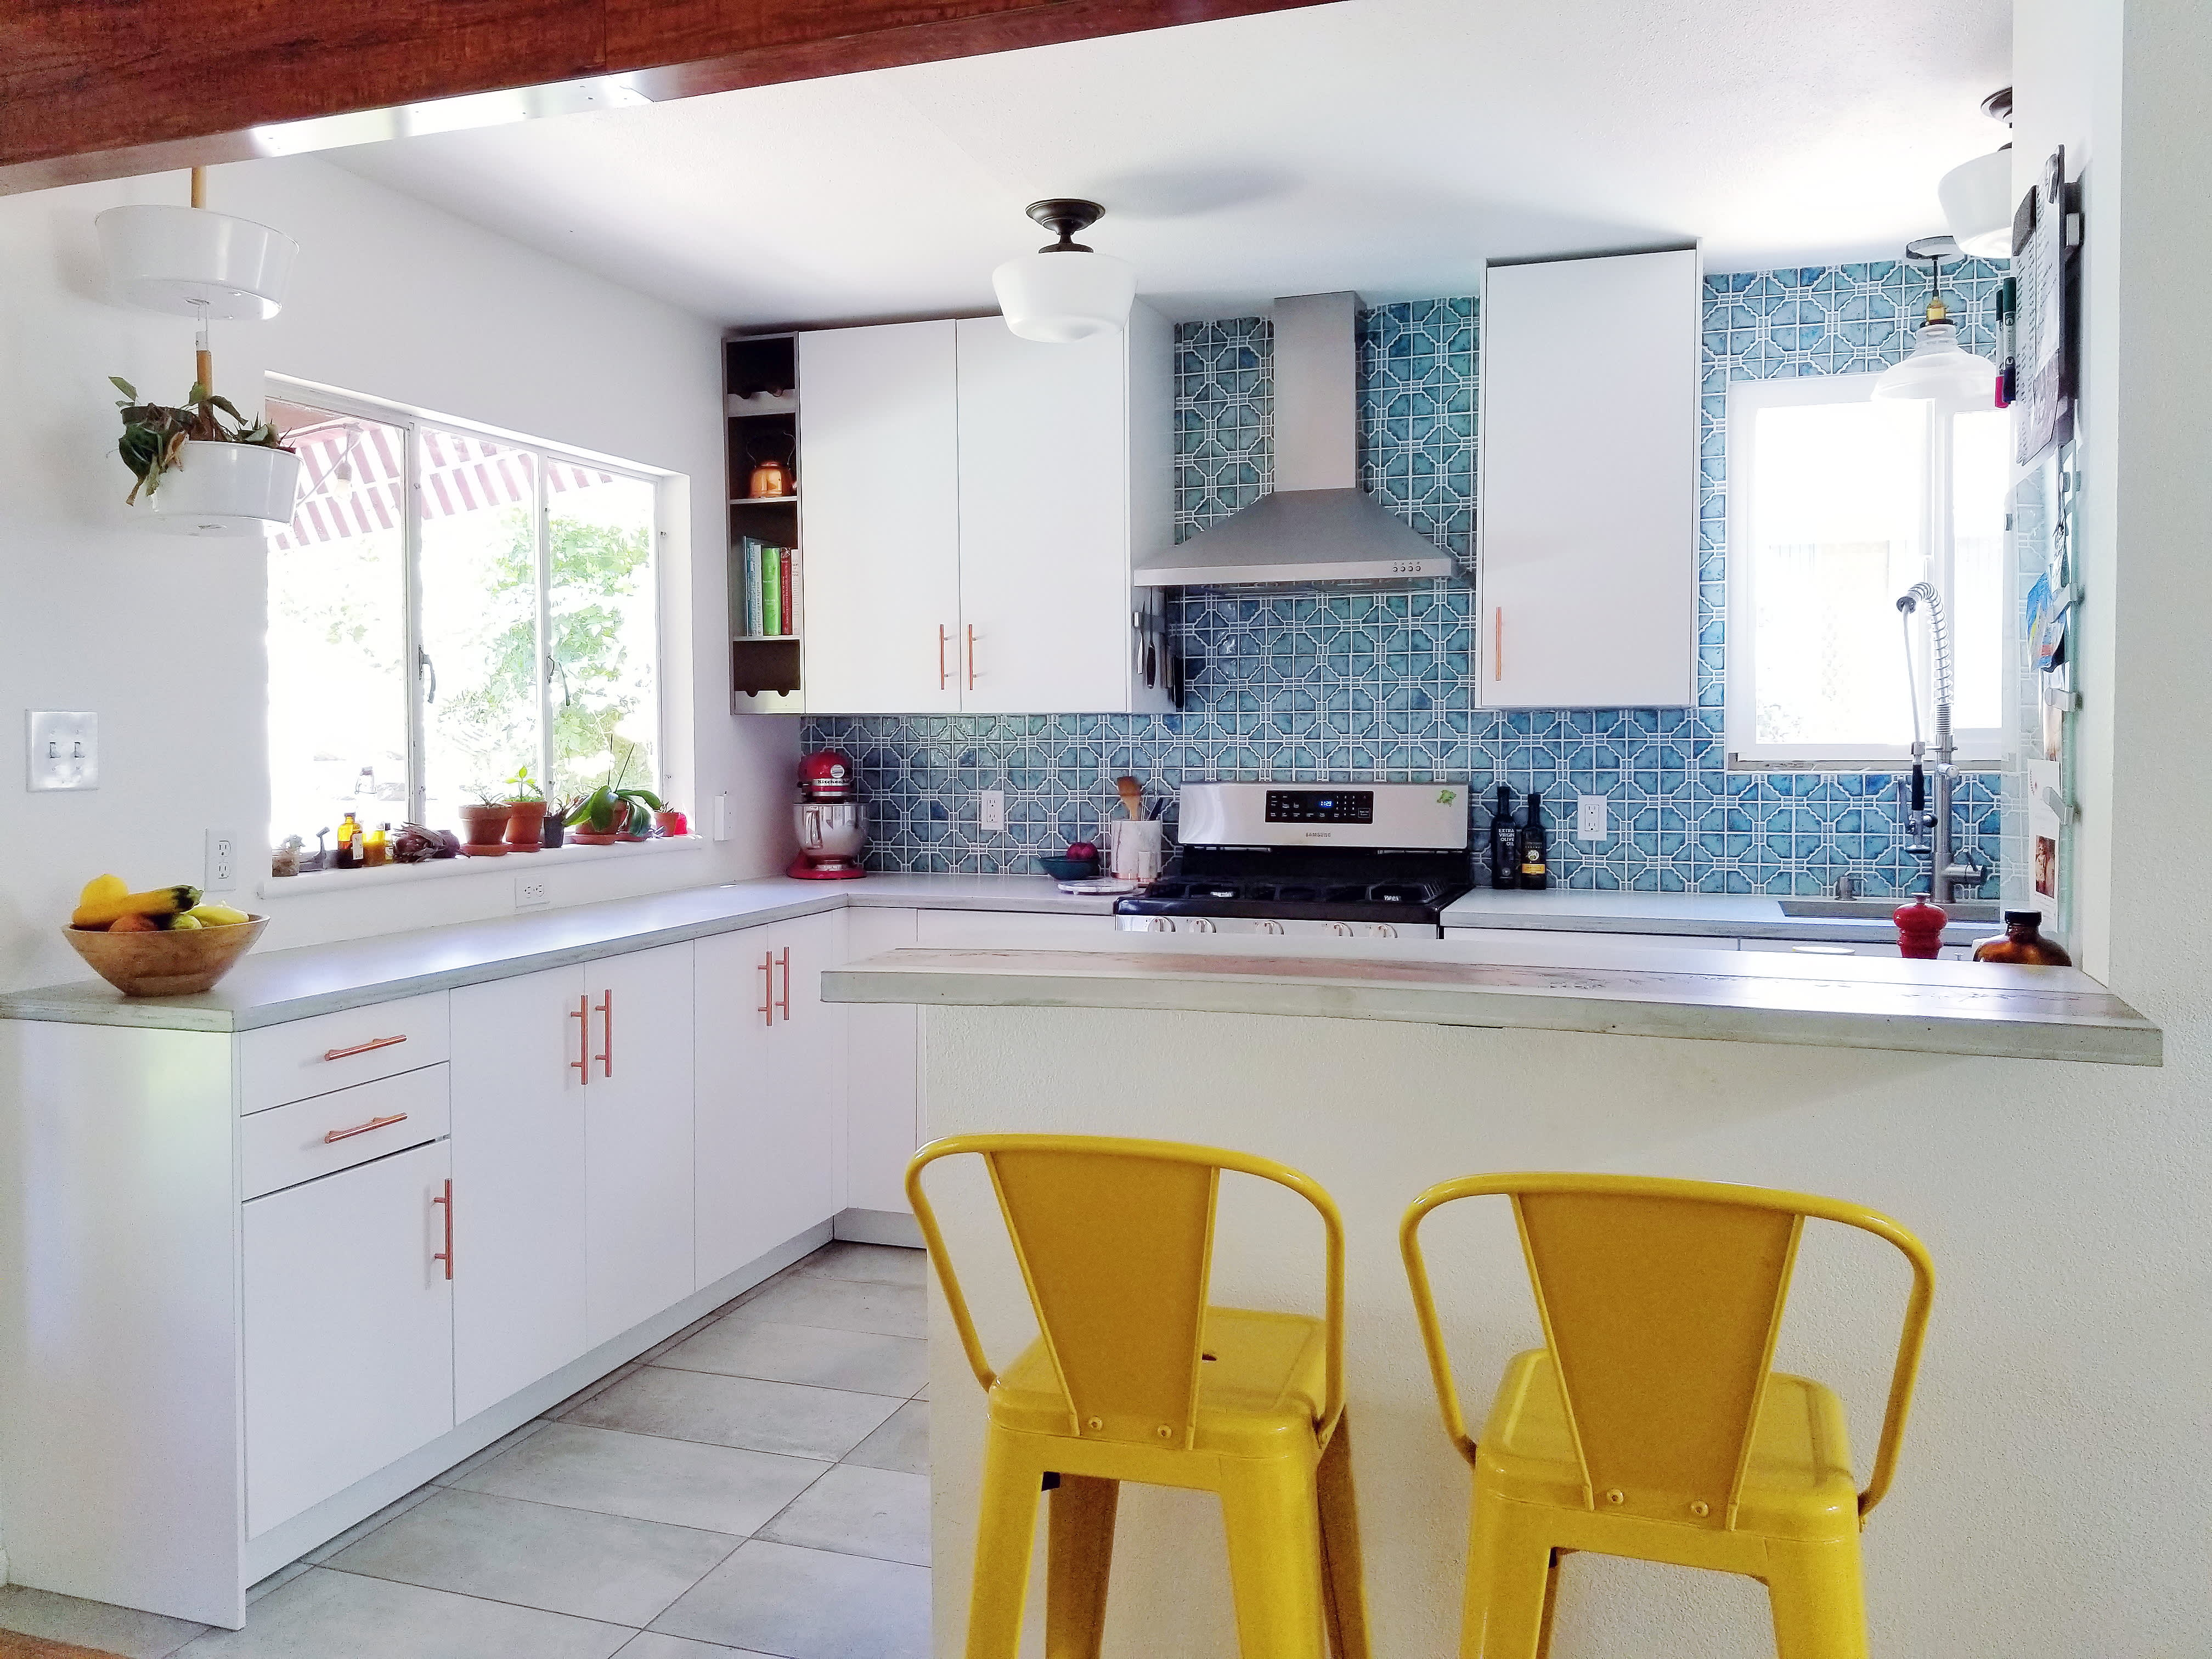 Before and After: A Brown '60s Kitchen Is Now a Clean, Happy Space on 1980s kitchen, 90s kitchen, 20s kitchen, mod kitchen, sink placement in kitchen, 70s wood kitchen, 1970s interior design kitchen, horrible kitchen, 1950s kitchen, 1970s mobile home kitchen, modern kitchen, updating a 1960s kitchen, 1960 style kitchen, diner kitchen, 40s kitchen, old kitchen, 50s kitchen, 2000s kitchen, remodel 1970 ranch style kitchen,